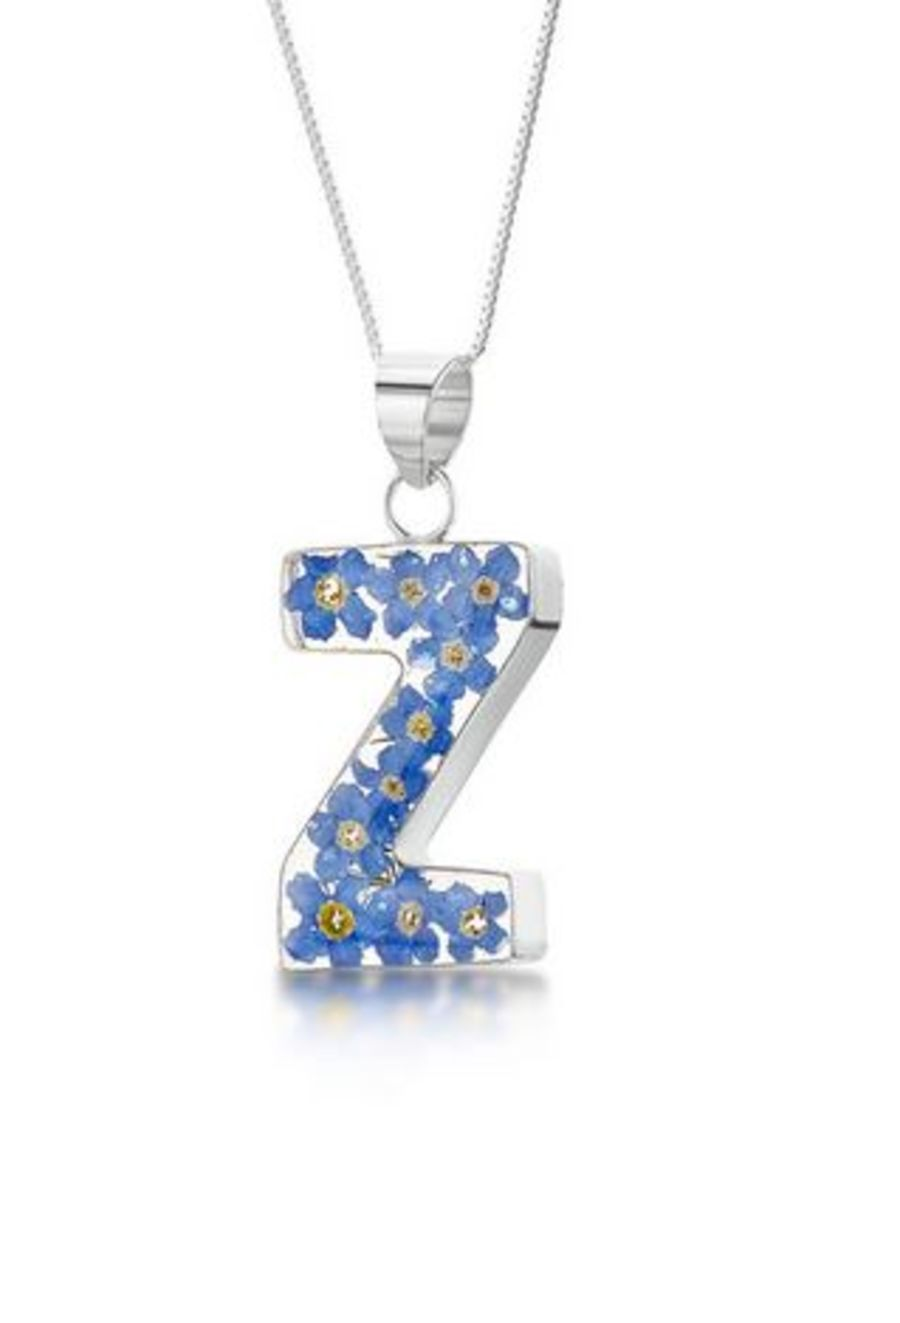 Silver Forget-Me-Not A-Z Initial Pendant by Shrieking Violet